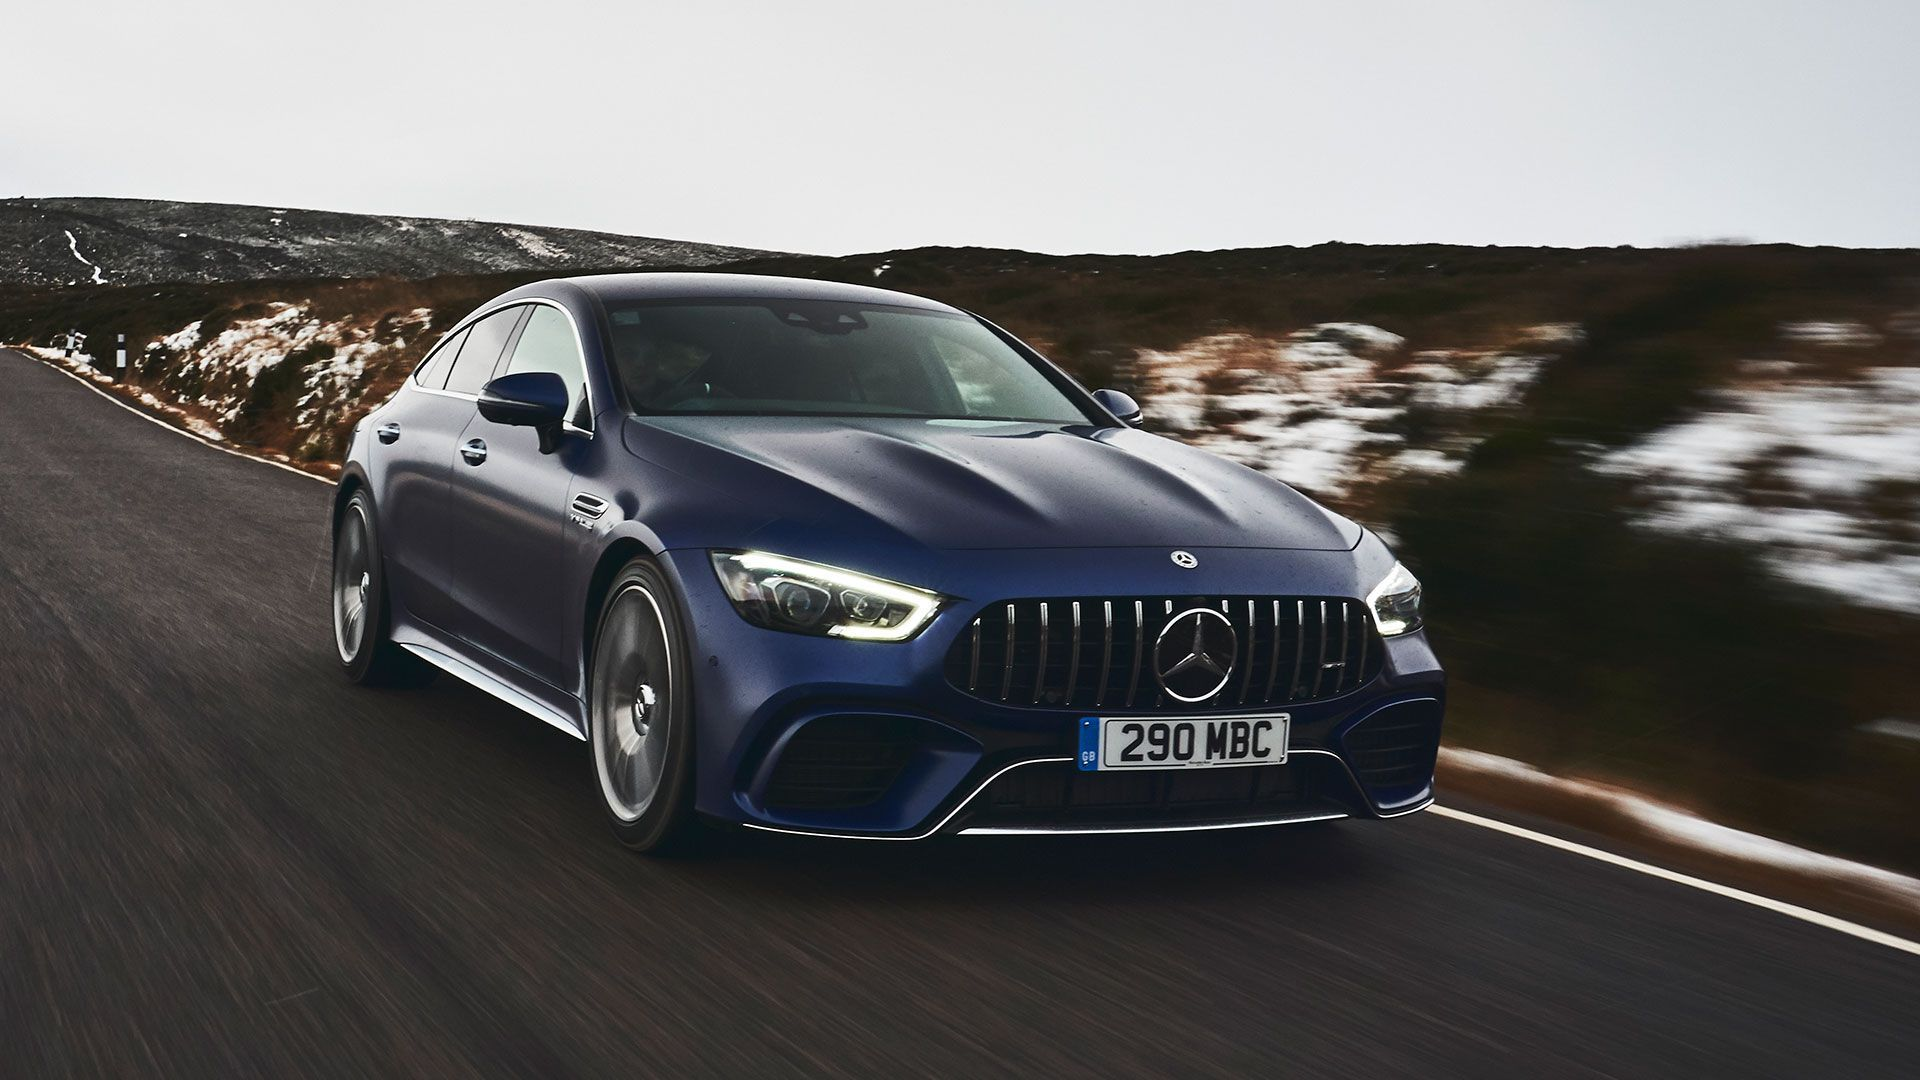 Mercedes-Benz Amg Gt Edition 476 Plus image